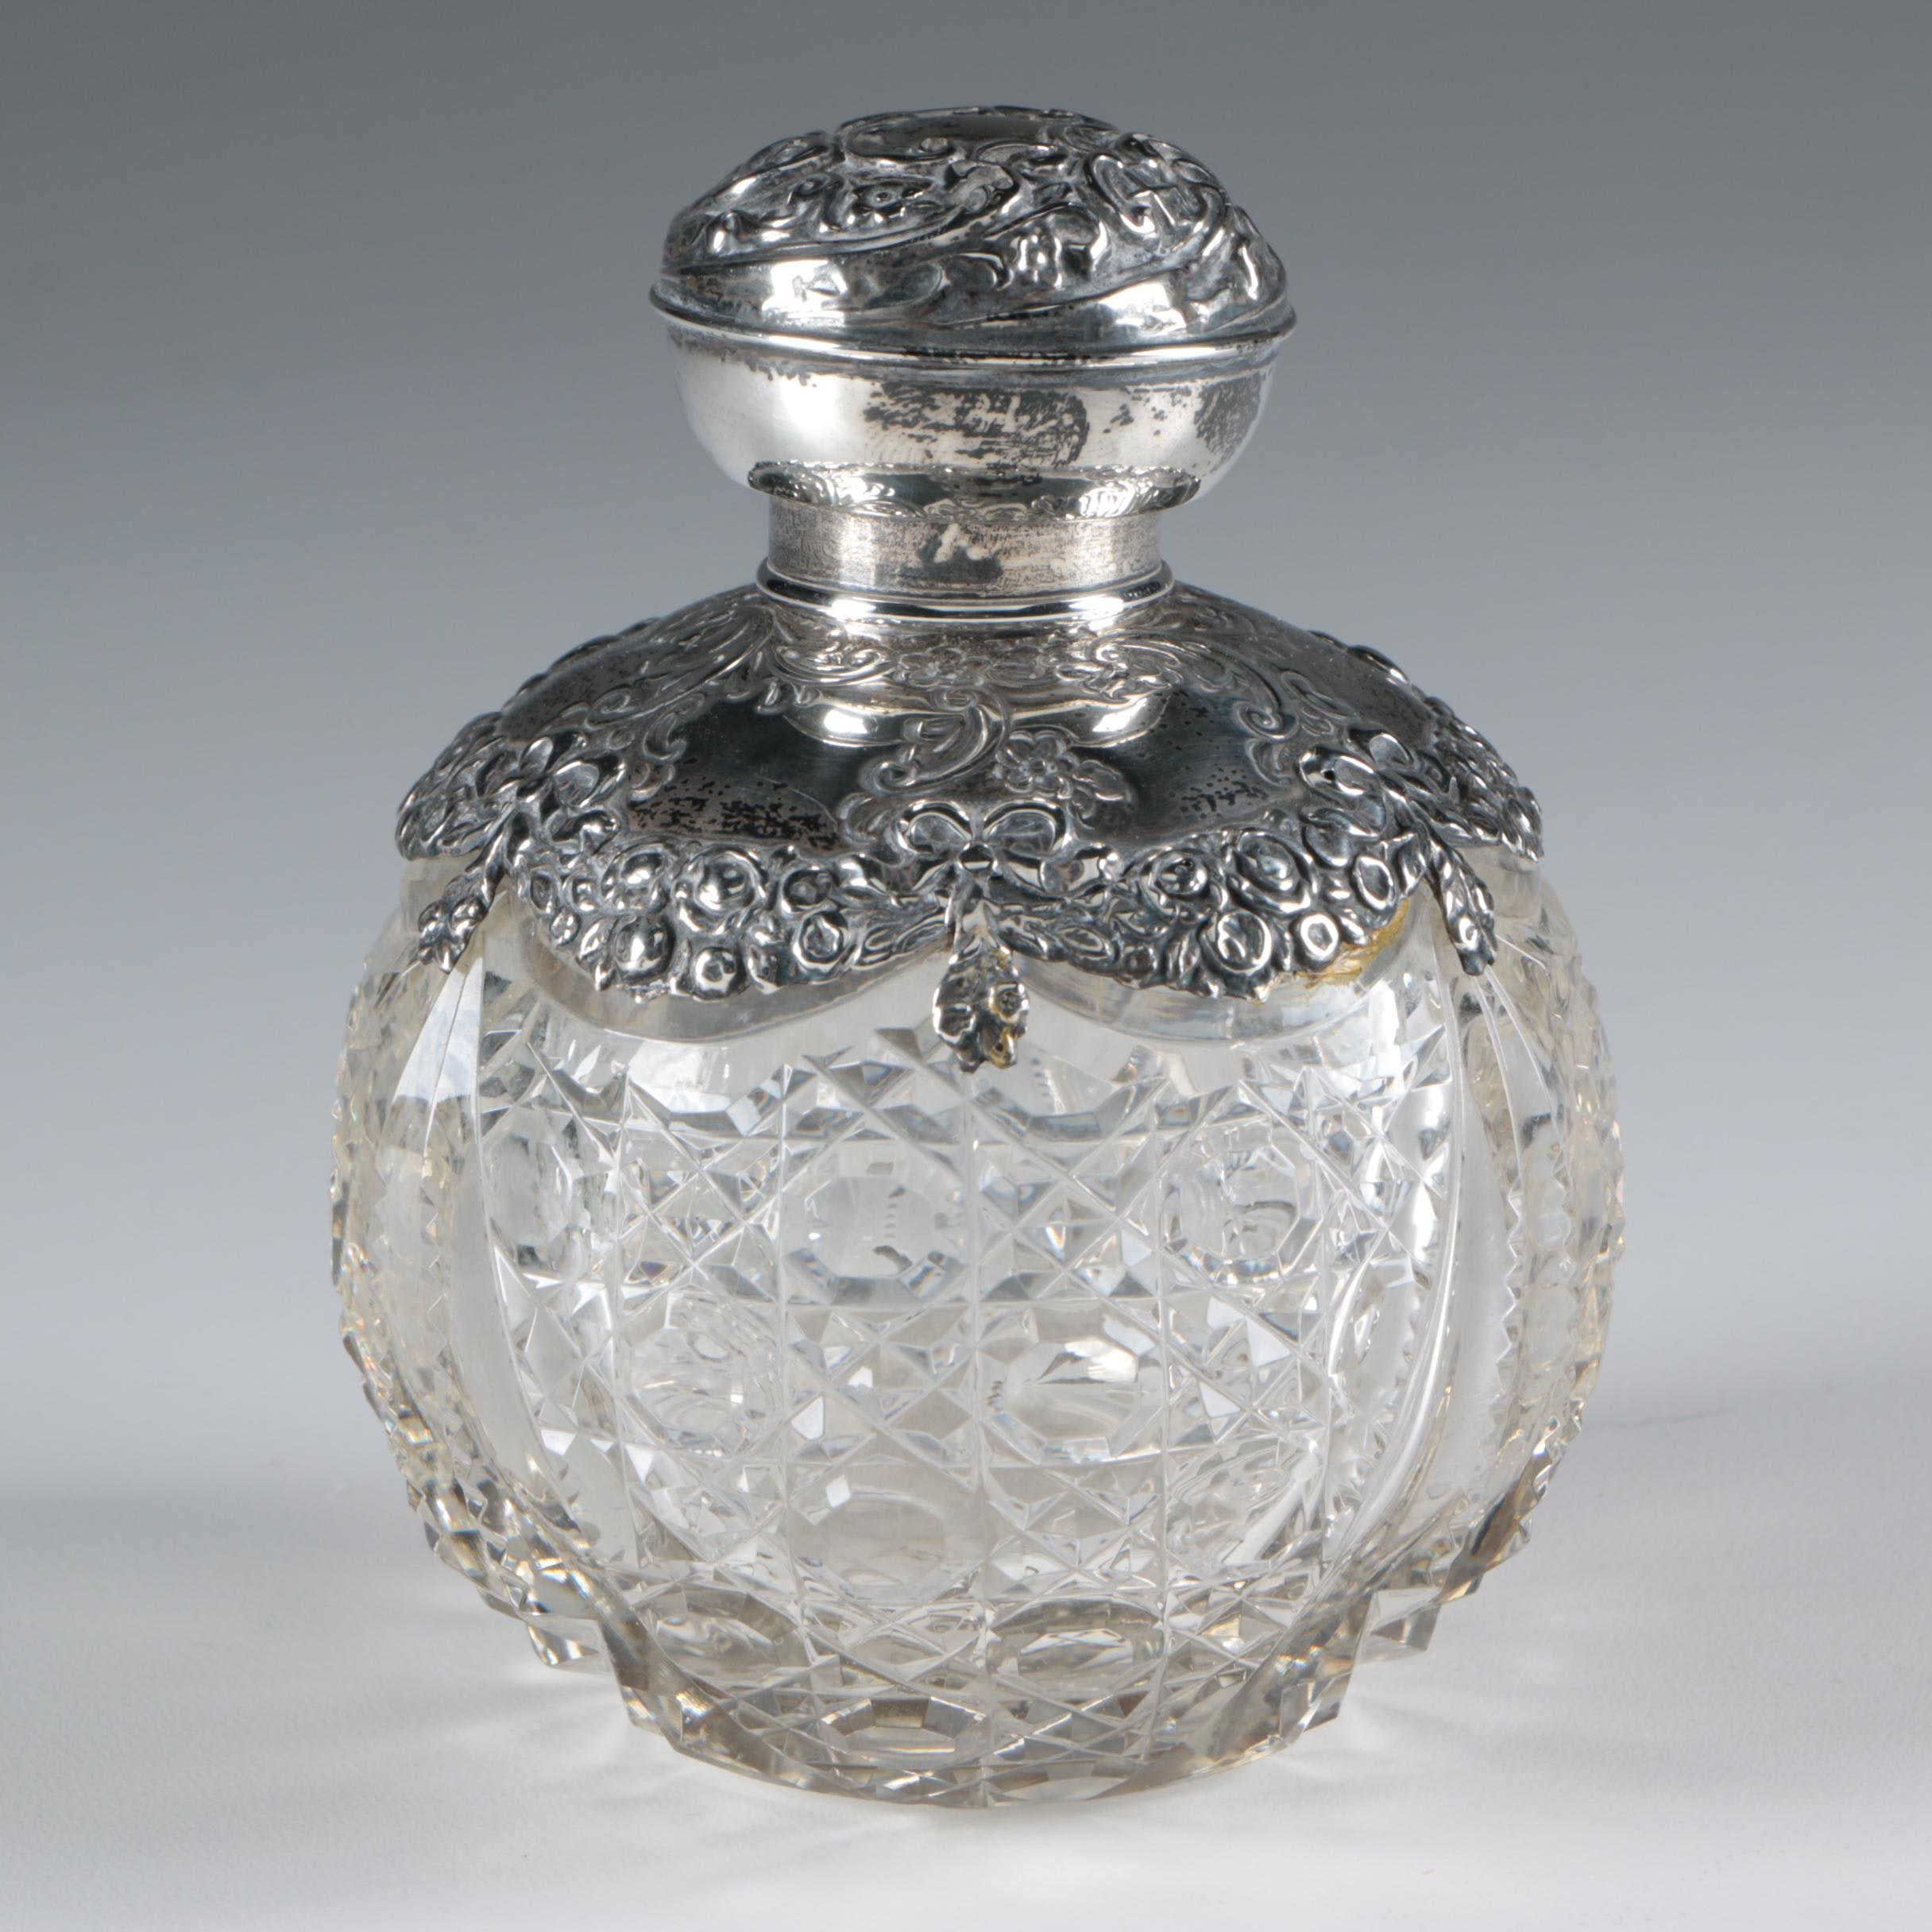 Birmingham Sterling Silver and Cut Glass Perfume Bottle, 1906